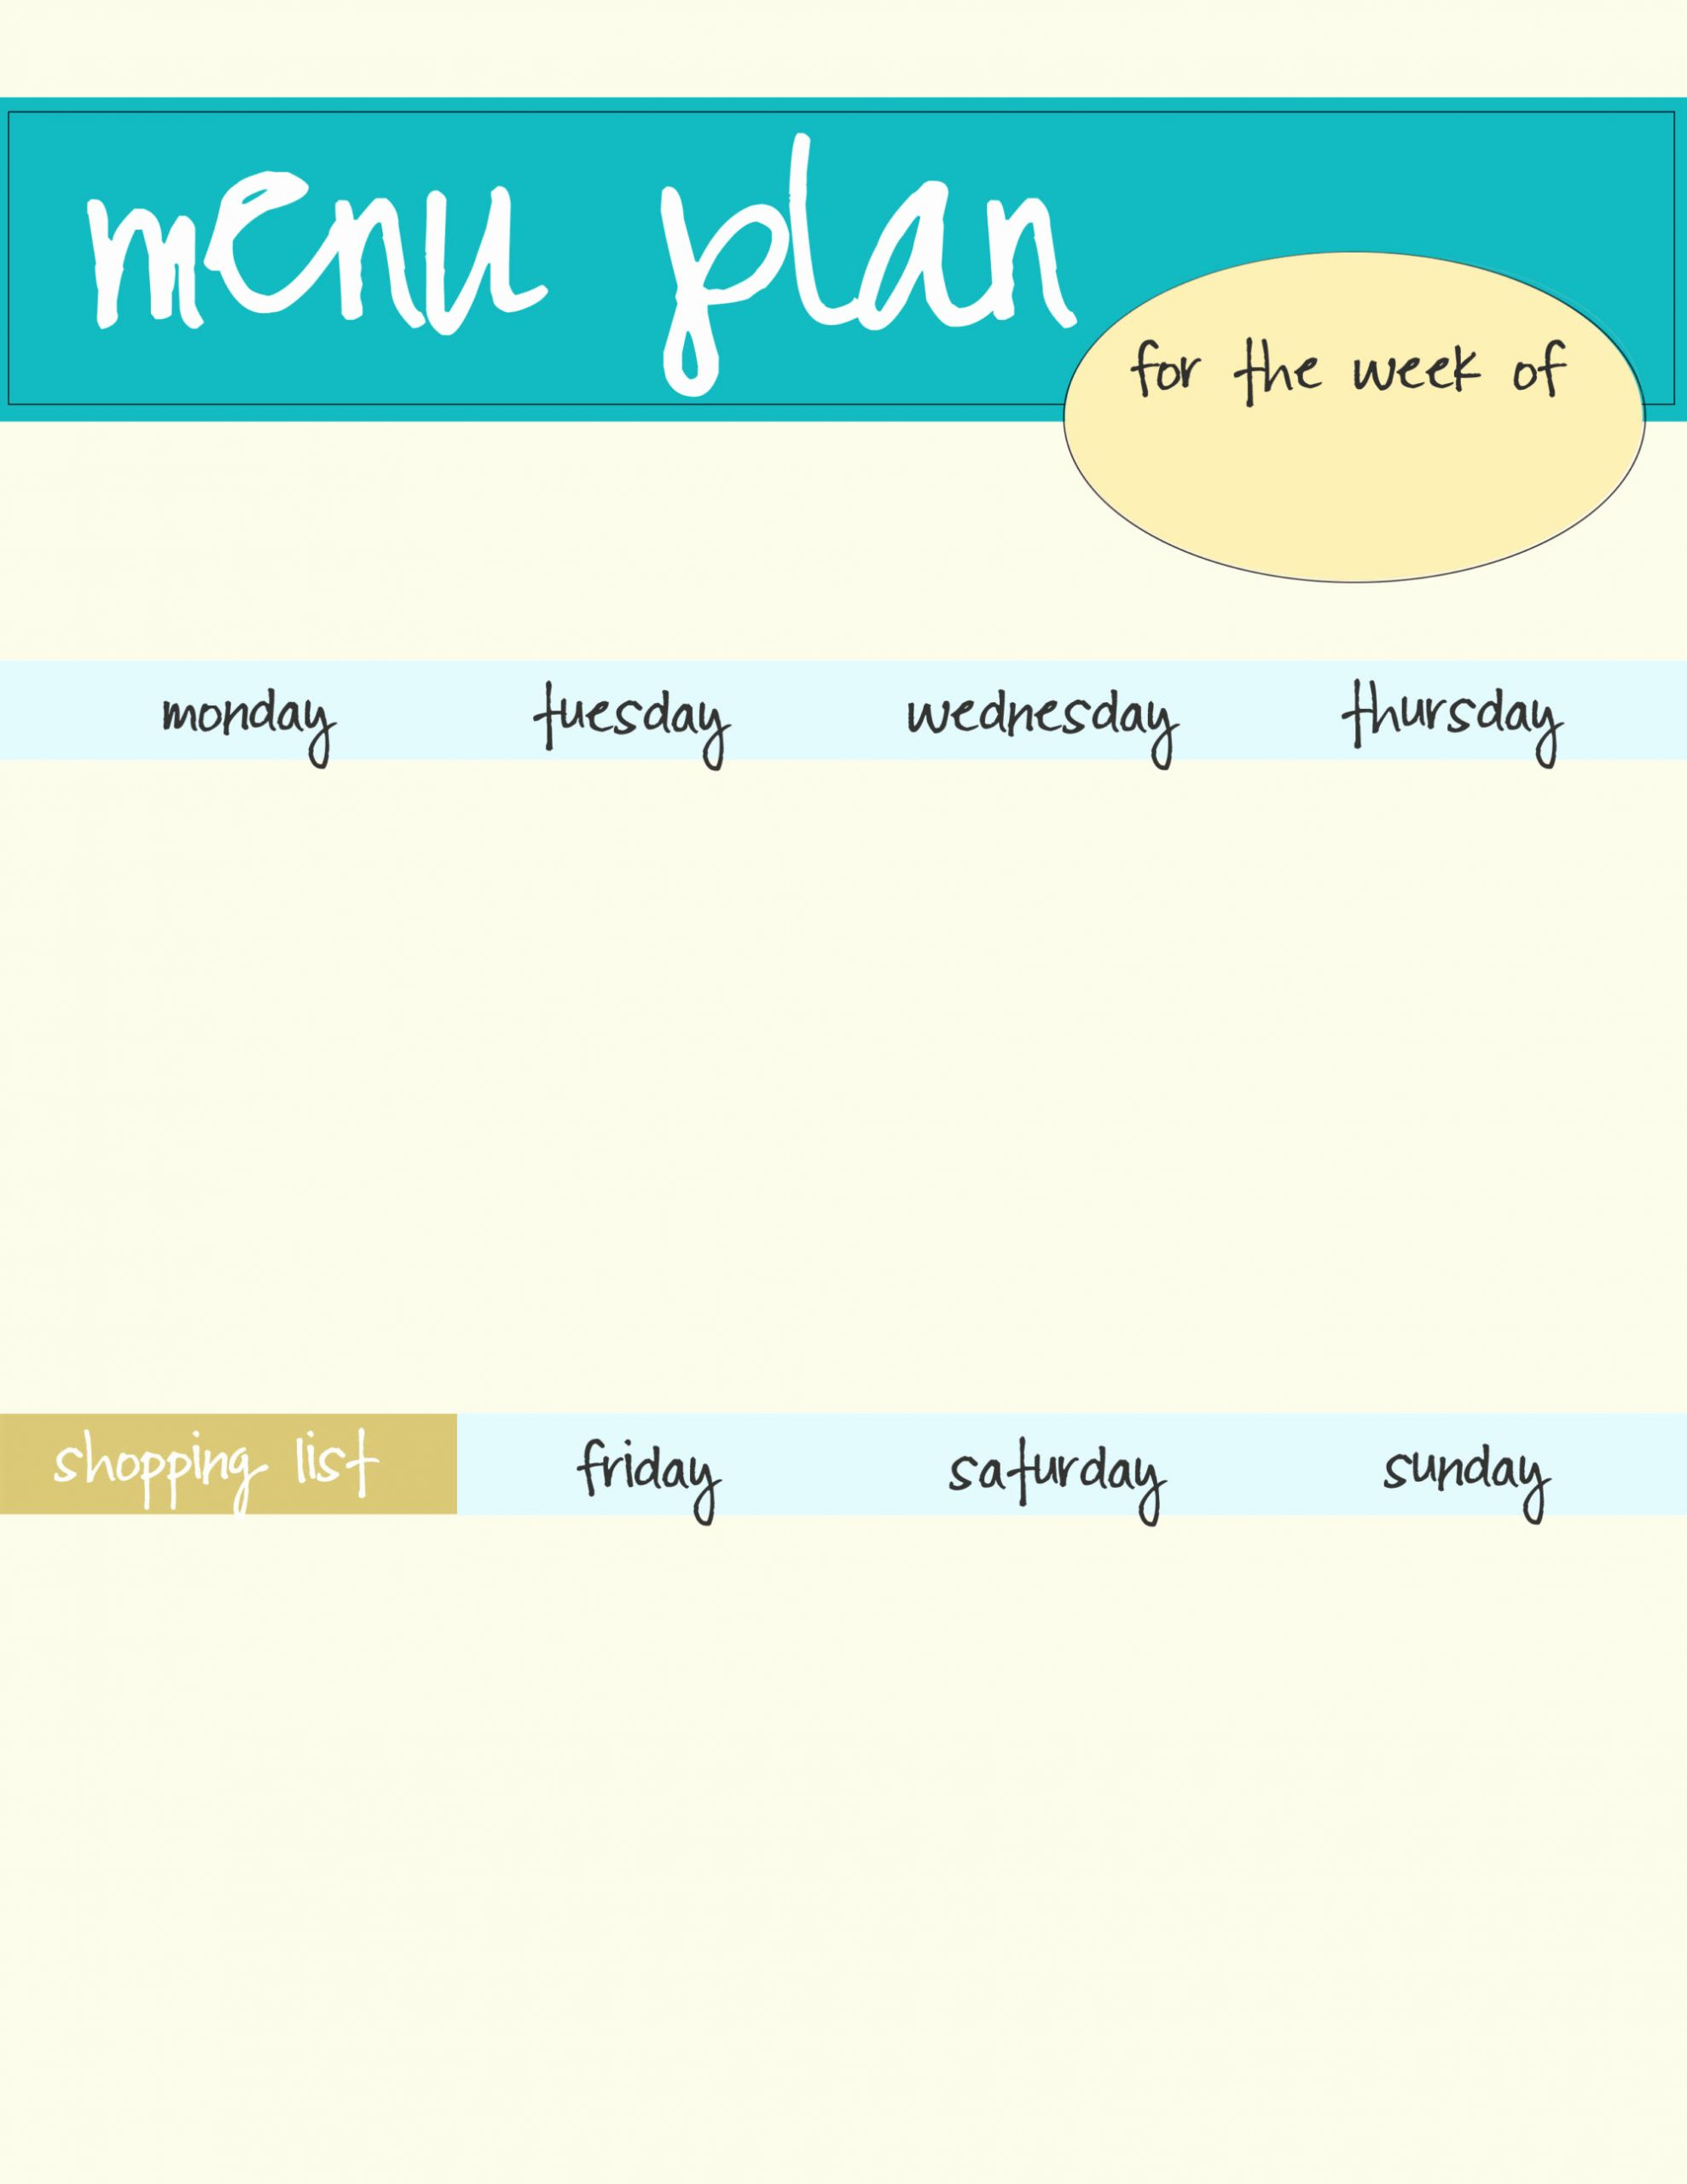 Lunch Menu Template Free New Meal Planning Template Free Download